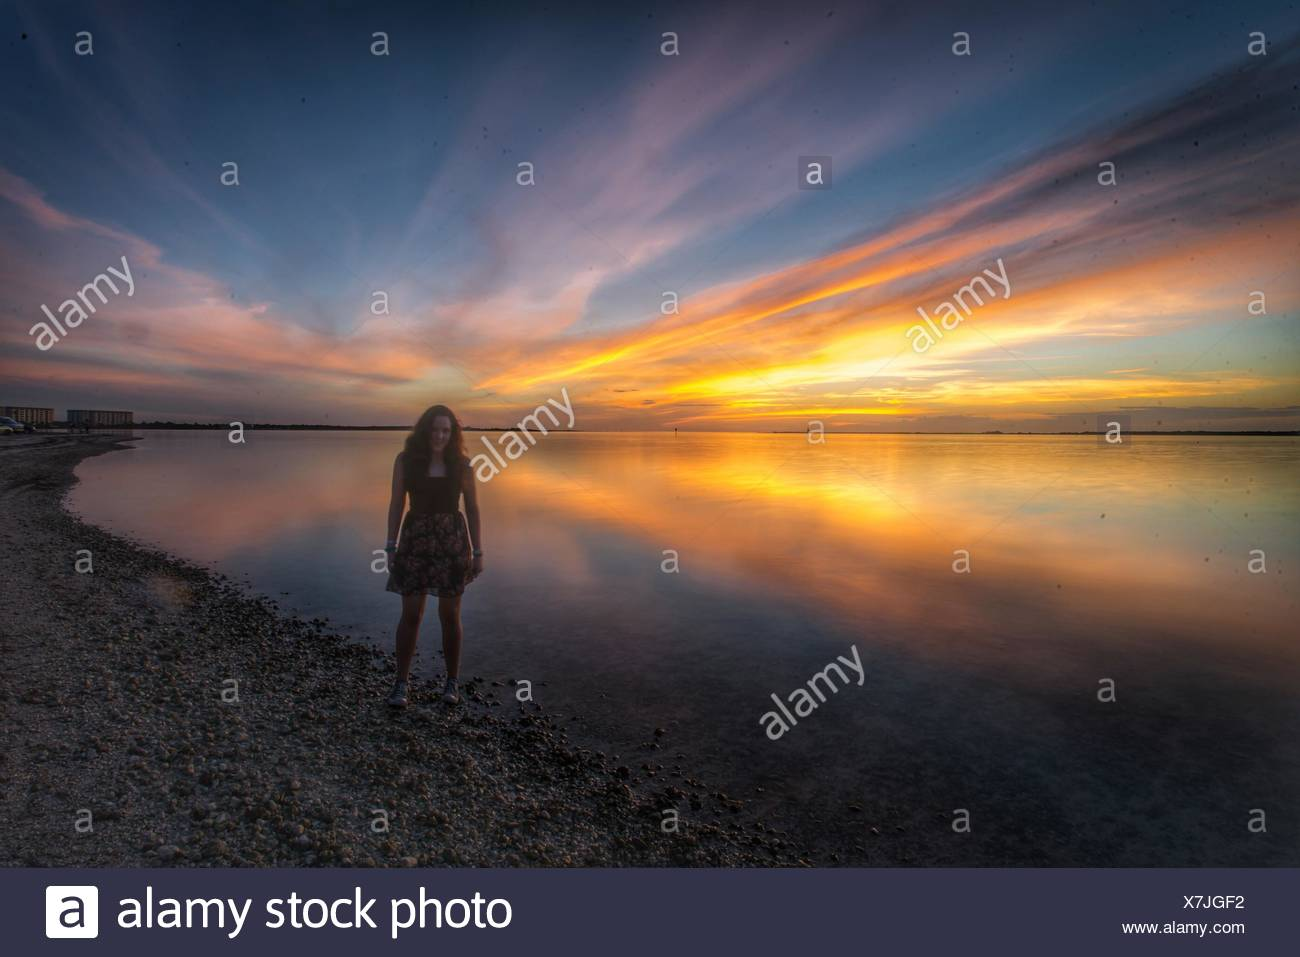 Full Length Of Woman Standing On Beach At Dusk - Stock Image